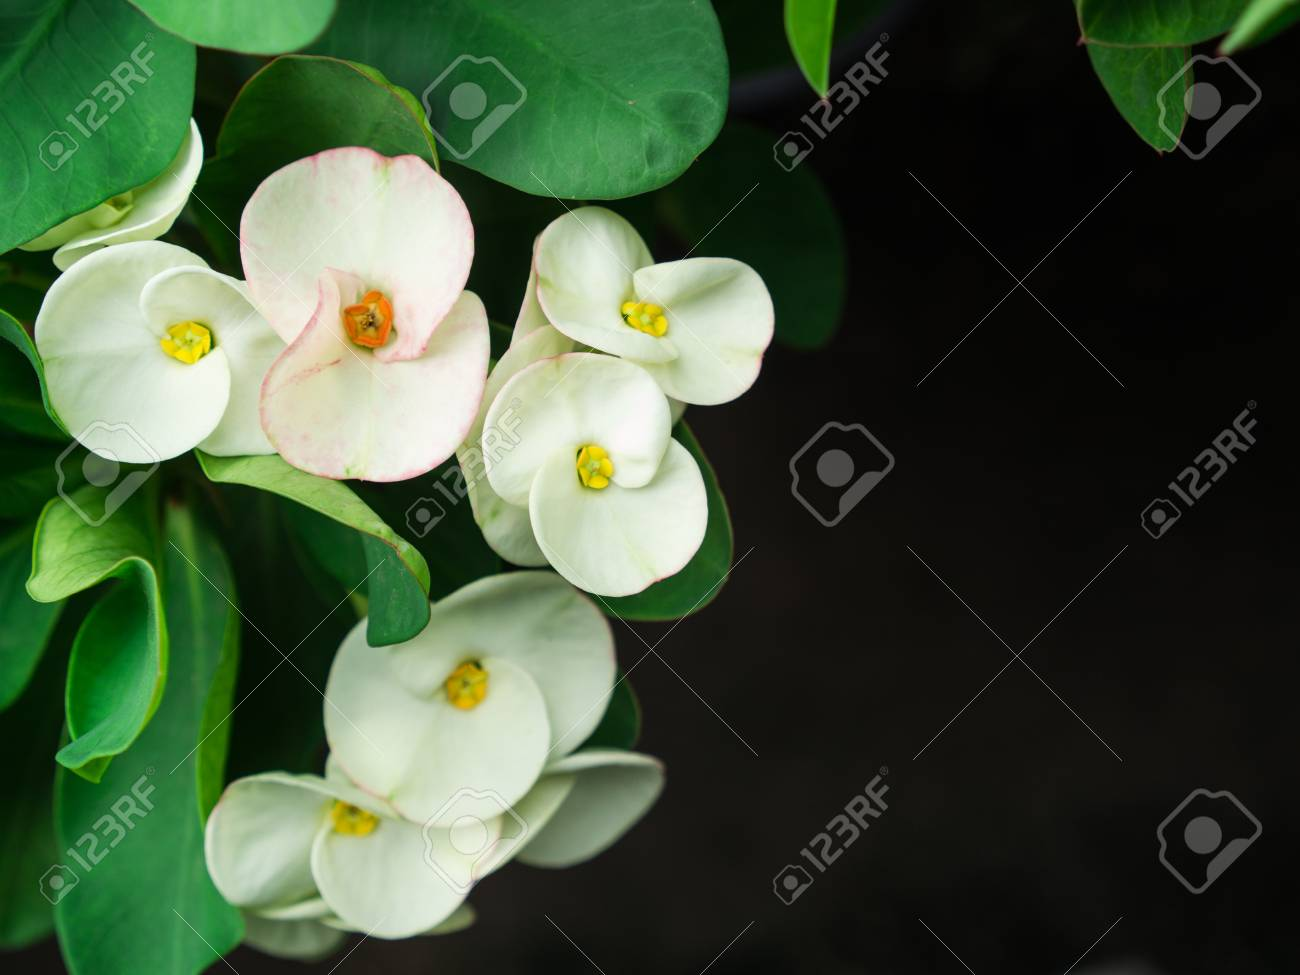 The White Euphorbia Milii Flowers Blooming In The Garden Stock Photo